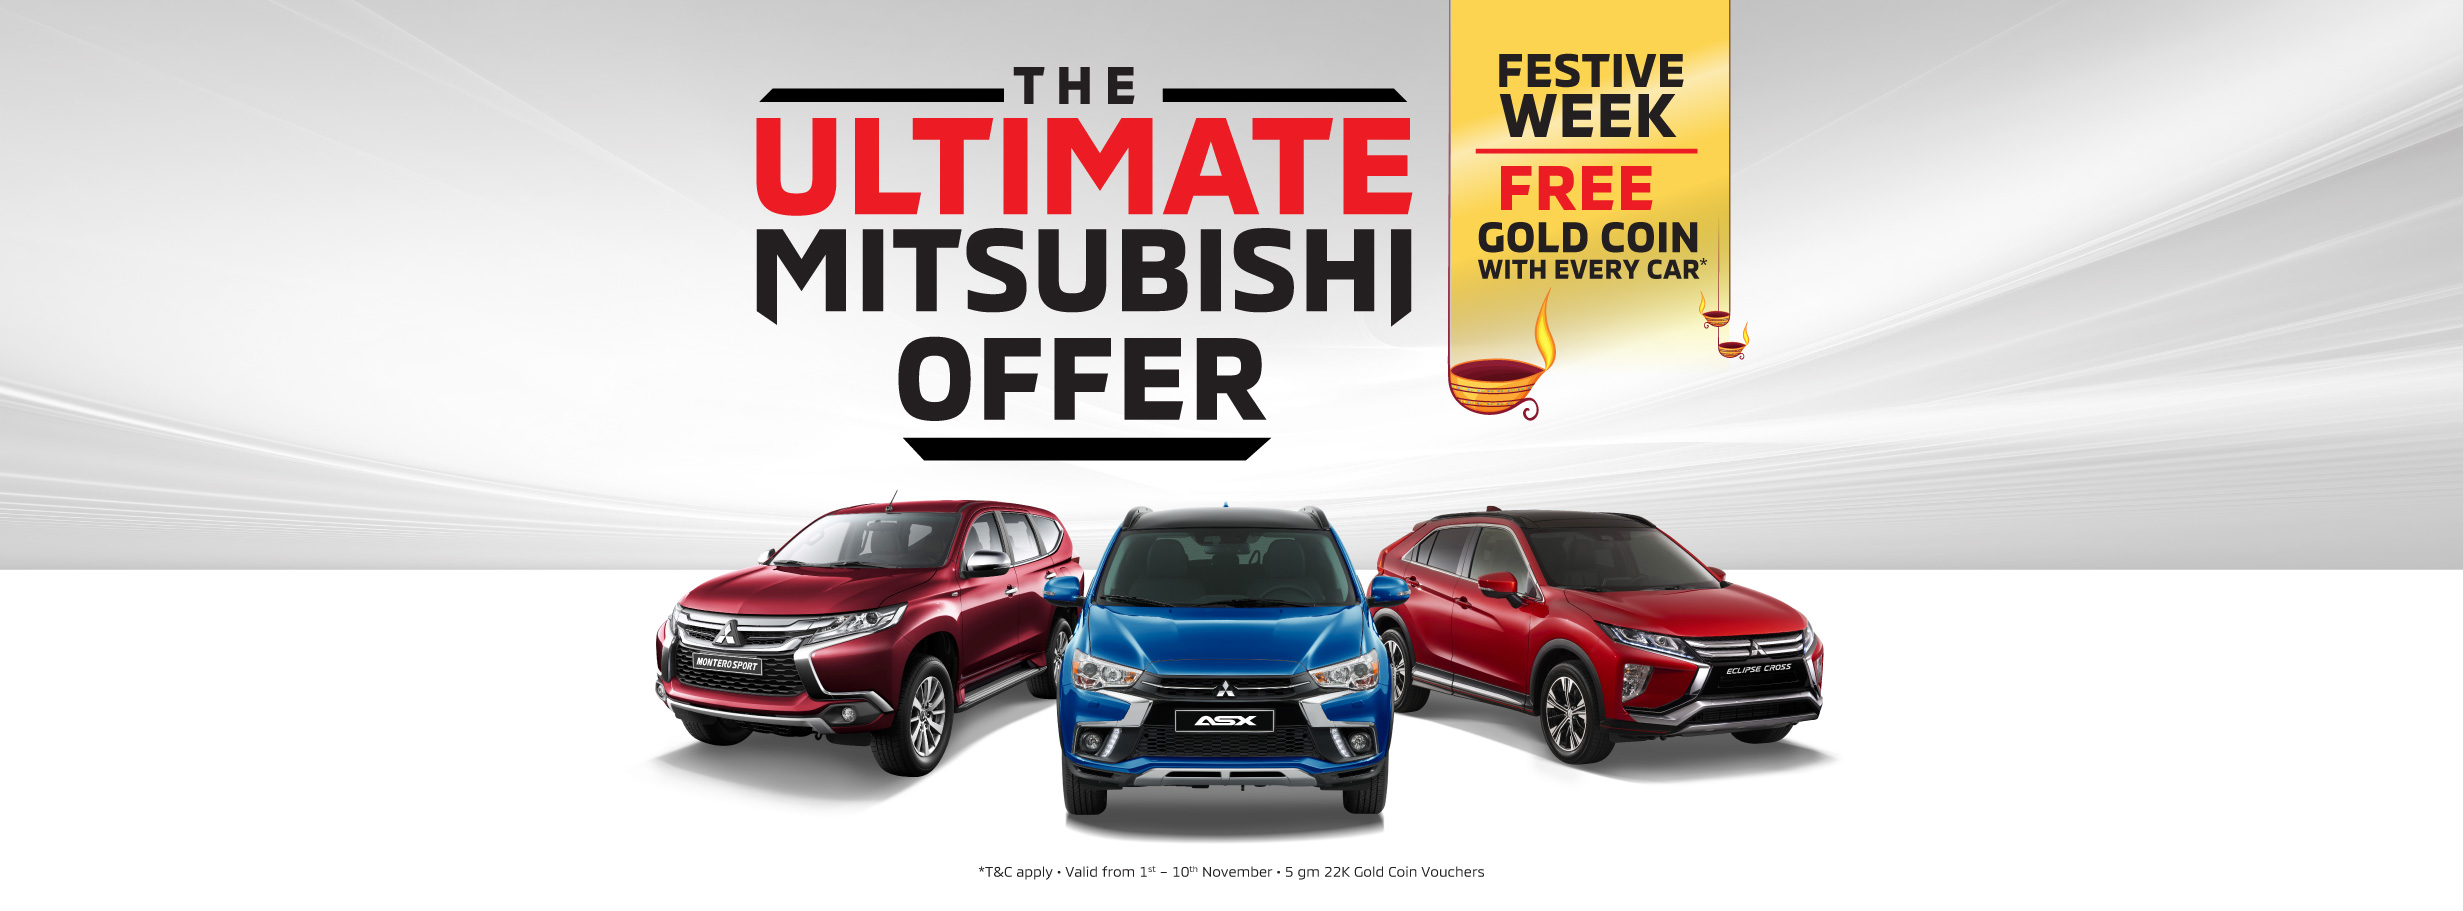 Mitsubishi Latest offers - Dubaisavers